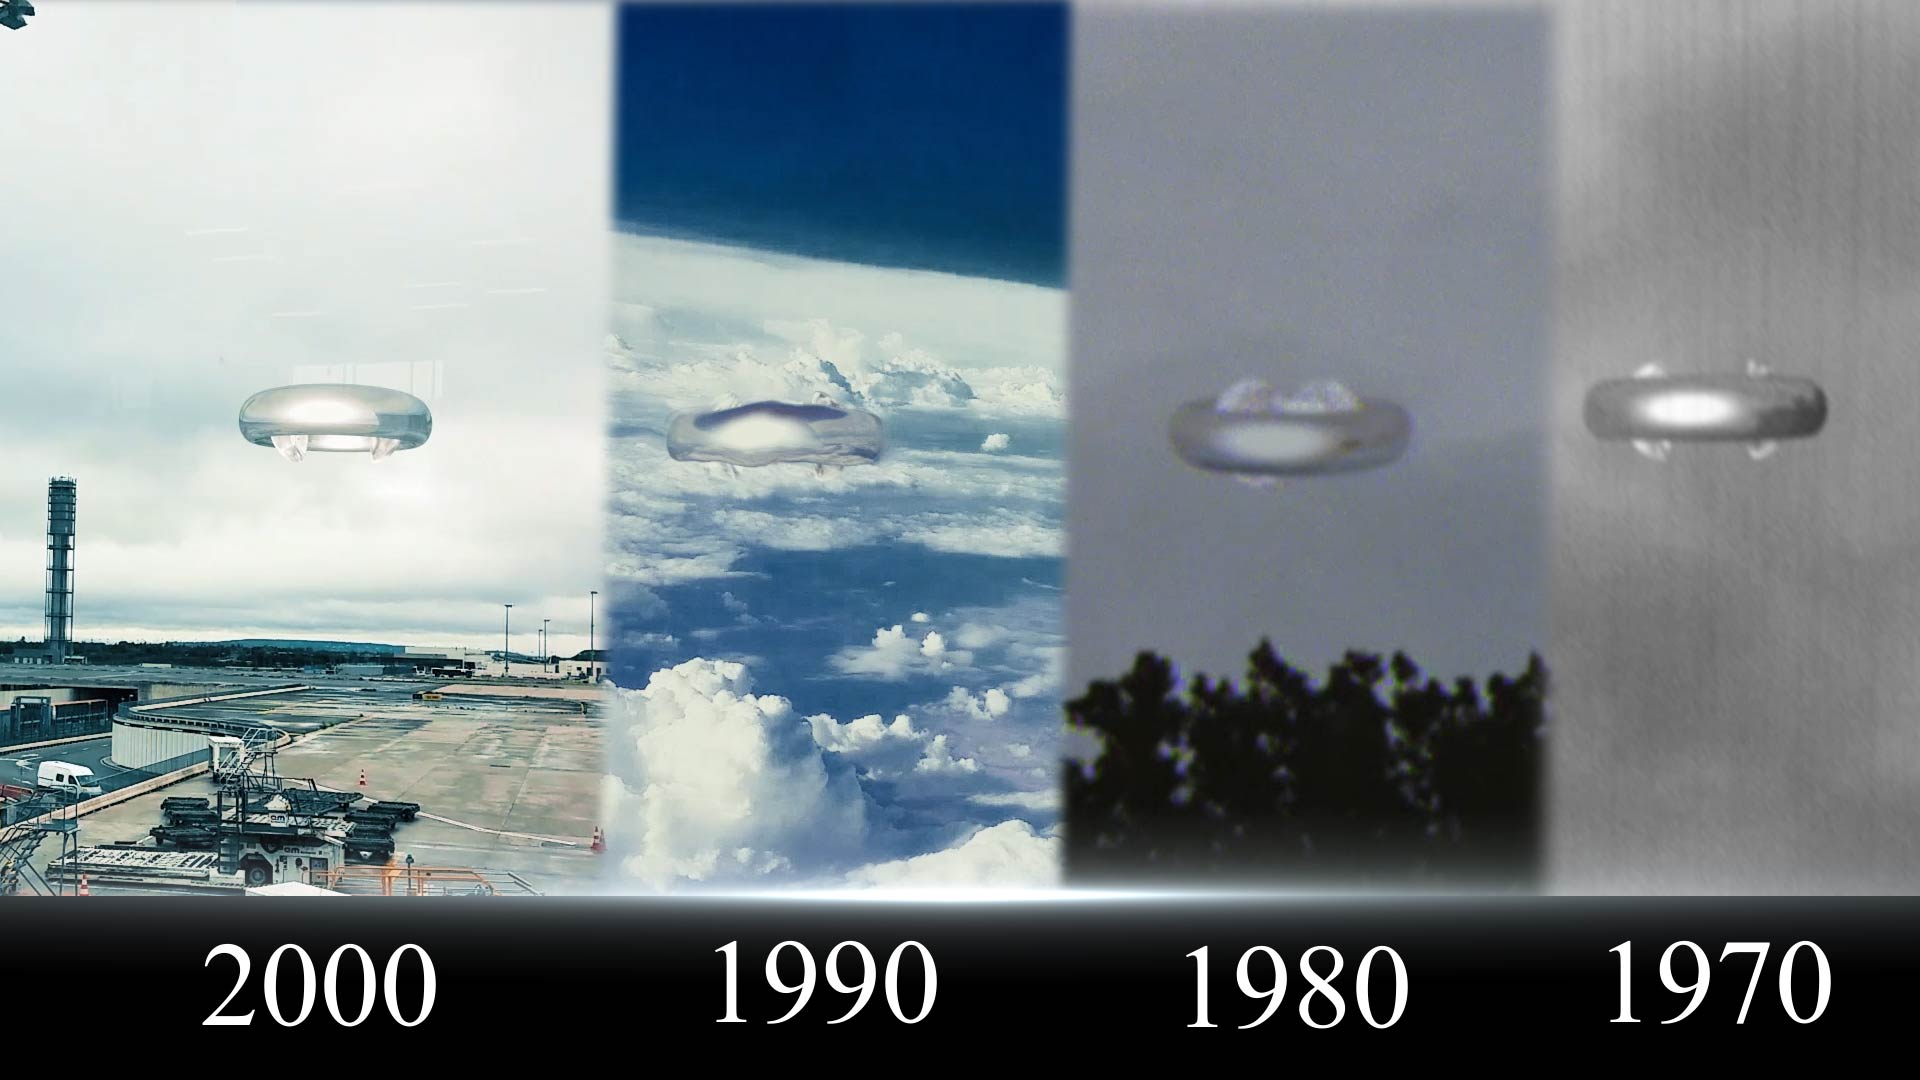 UFO Sightings Object Spotted In 1960s 1980s 1990s and 2000